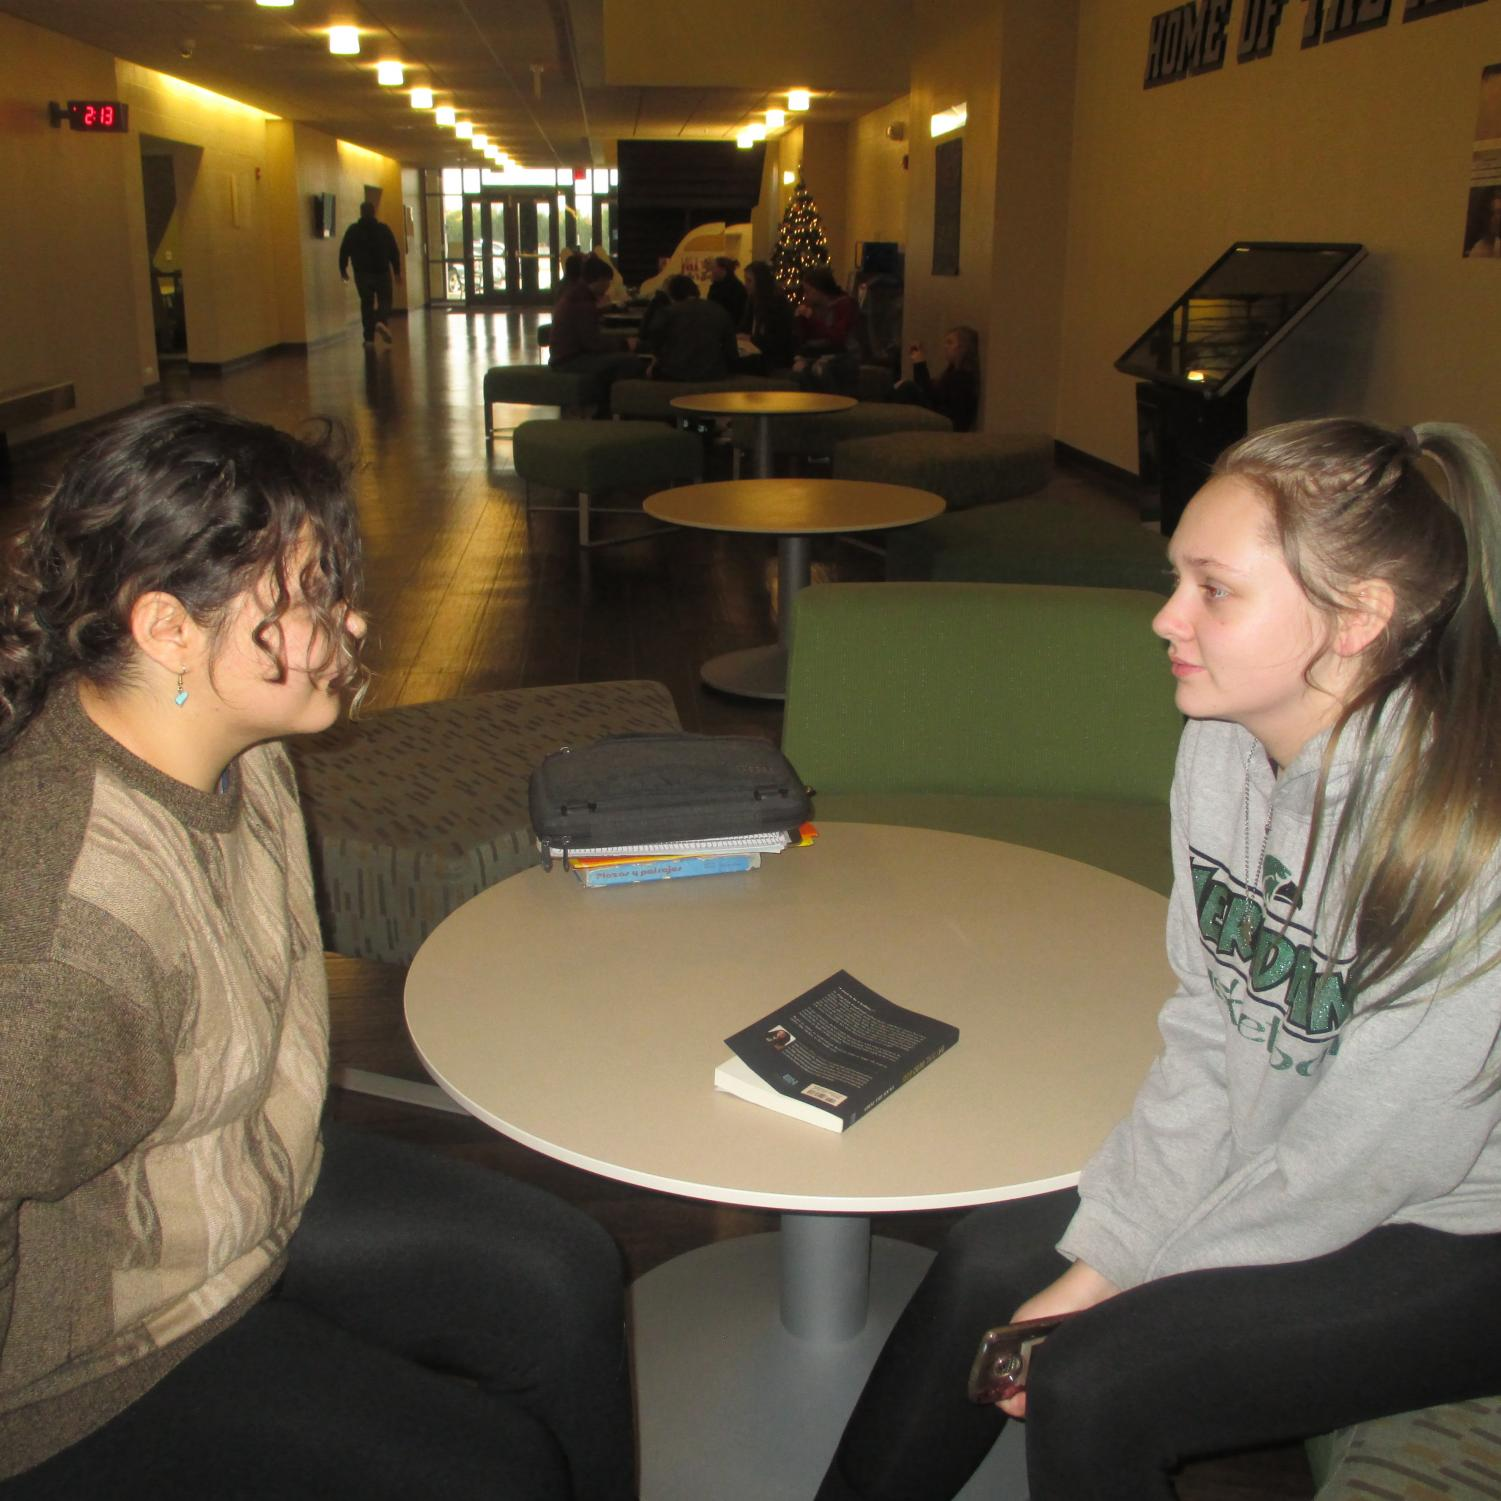 Sophomore debaters Haley Grimes and Crystal Sheumaker have a mean stare down weeks before the debate.  The debate will take place in December.